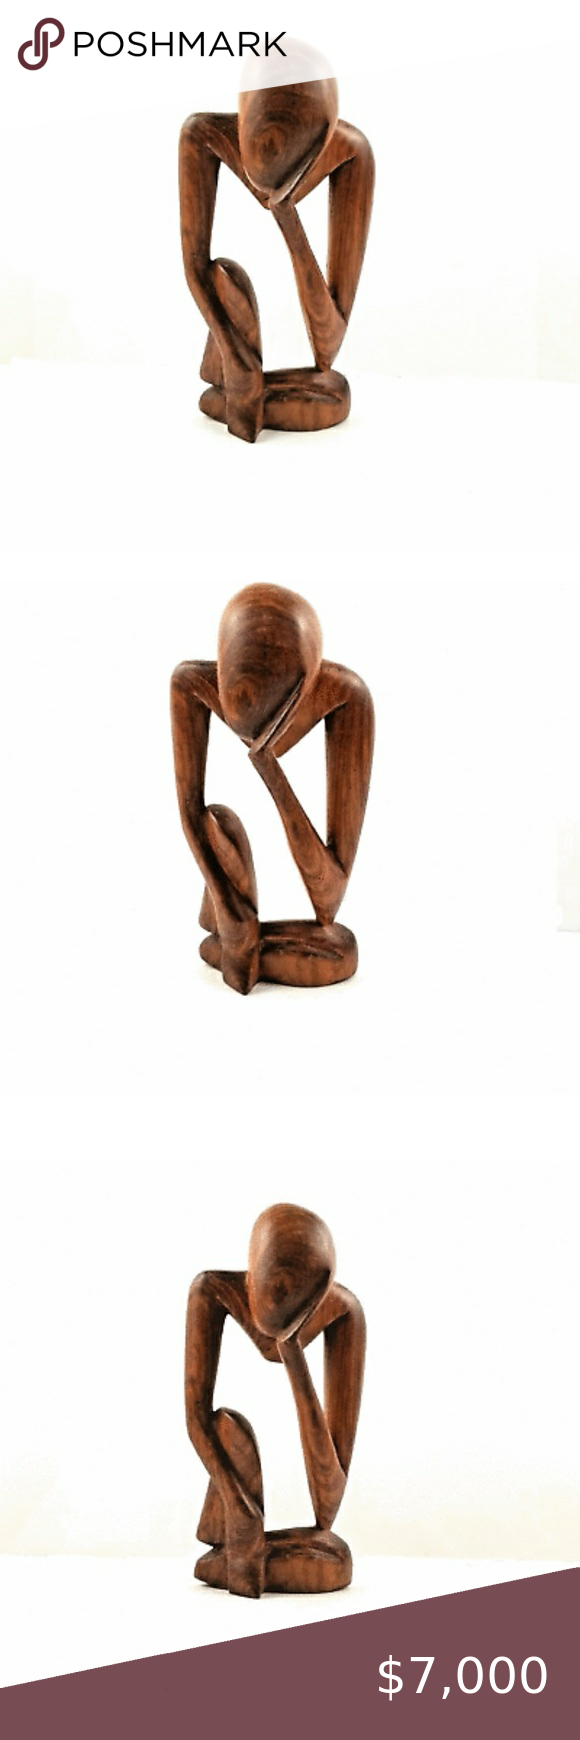 Wood Thinking Man Abstract Sculpture Handmade 10 Statue Handmade 10 This Hand Carved Wooden Statue Shows A Seate Abstract Sculpture Thinking Pose Sculpture